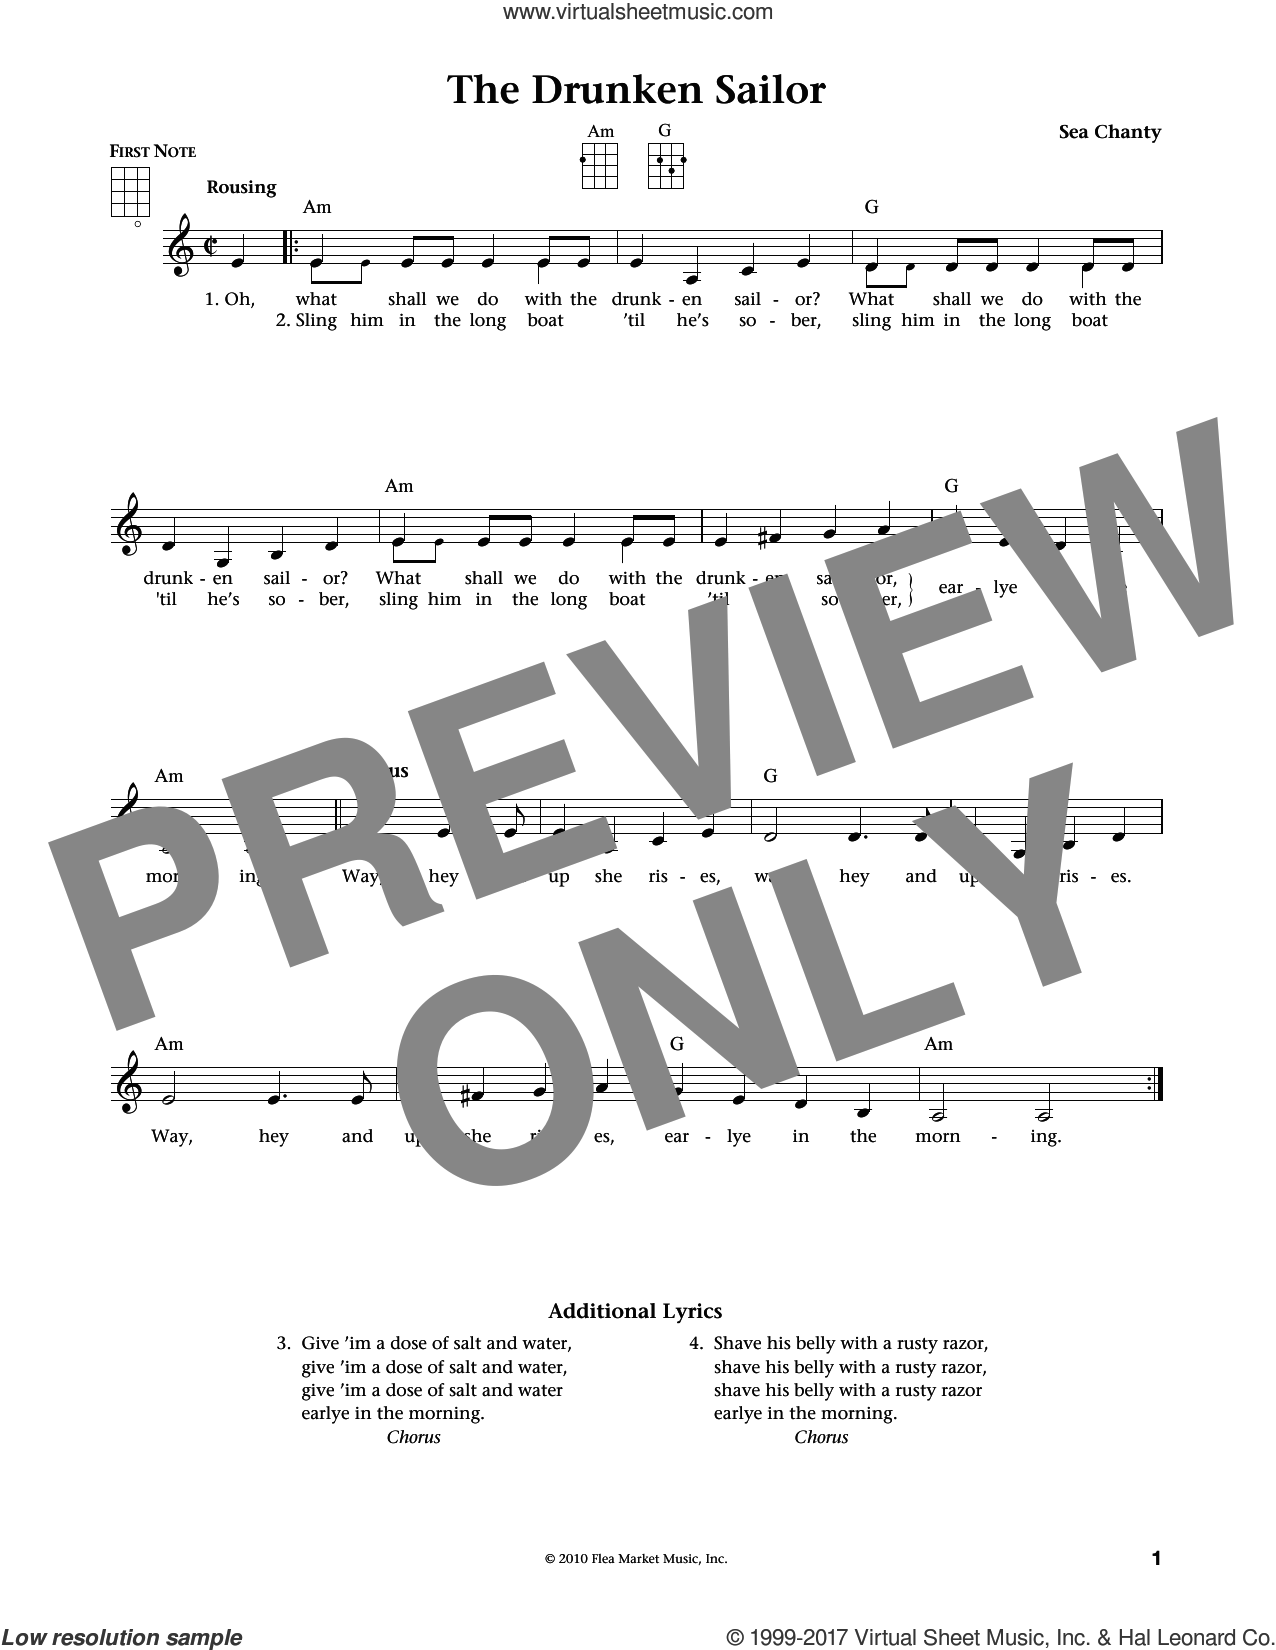 The Drunken Sailor (from The Daily Ukulele) (arr. Liz and Jim Beloff) sheet music for ukulele by American Sea Chantey, Jim Beloff and Liz Beloff, intermediate skill level